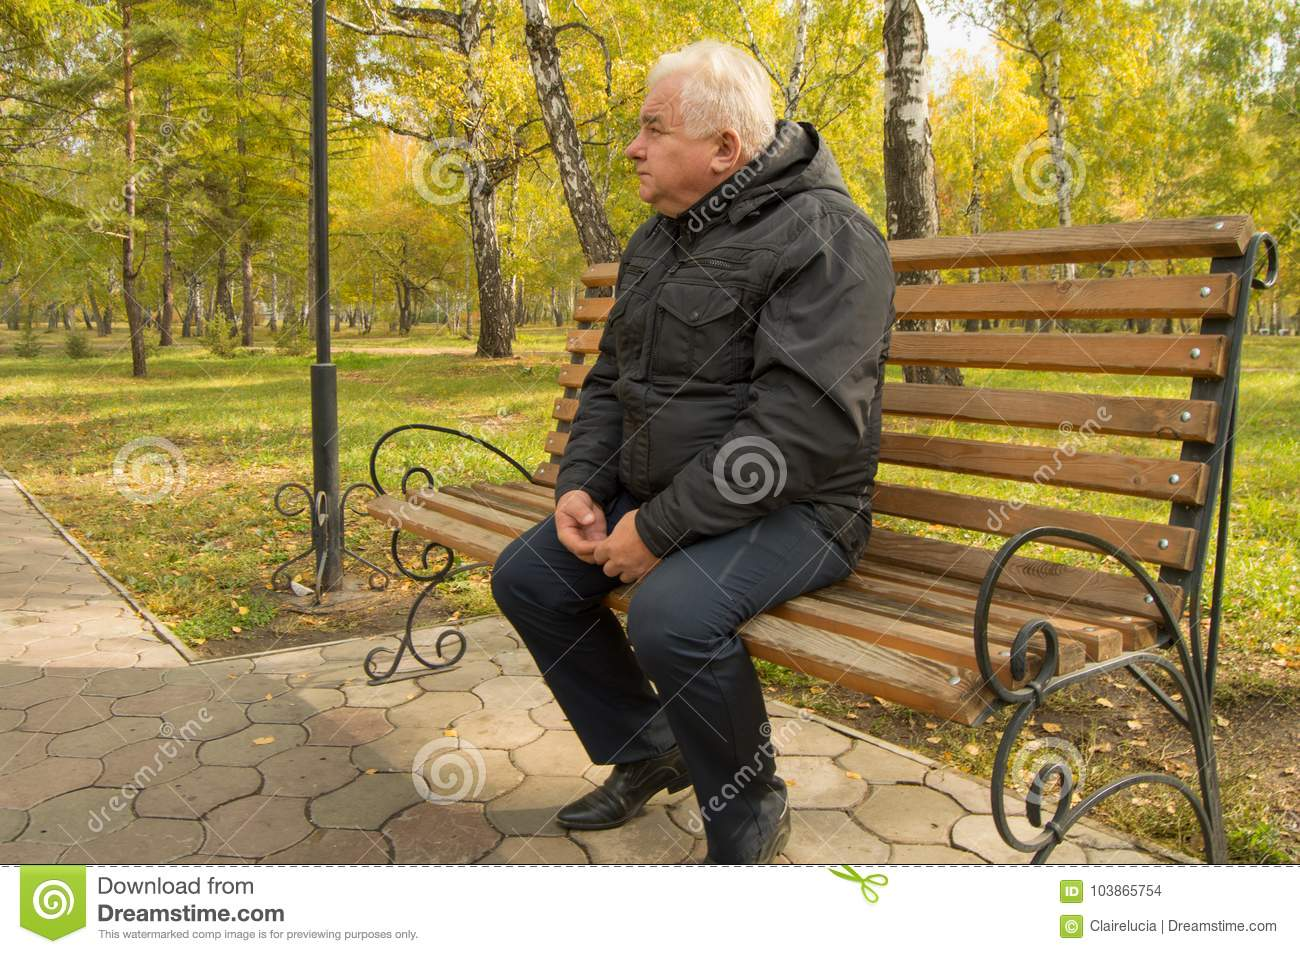 The Lone Gray Haired Old Man Resting On A Wooden Bench In A Park On